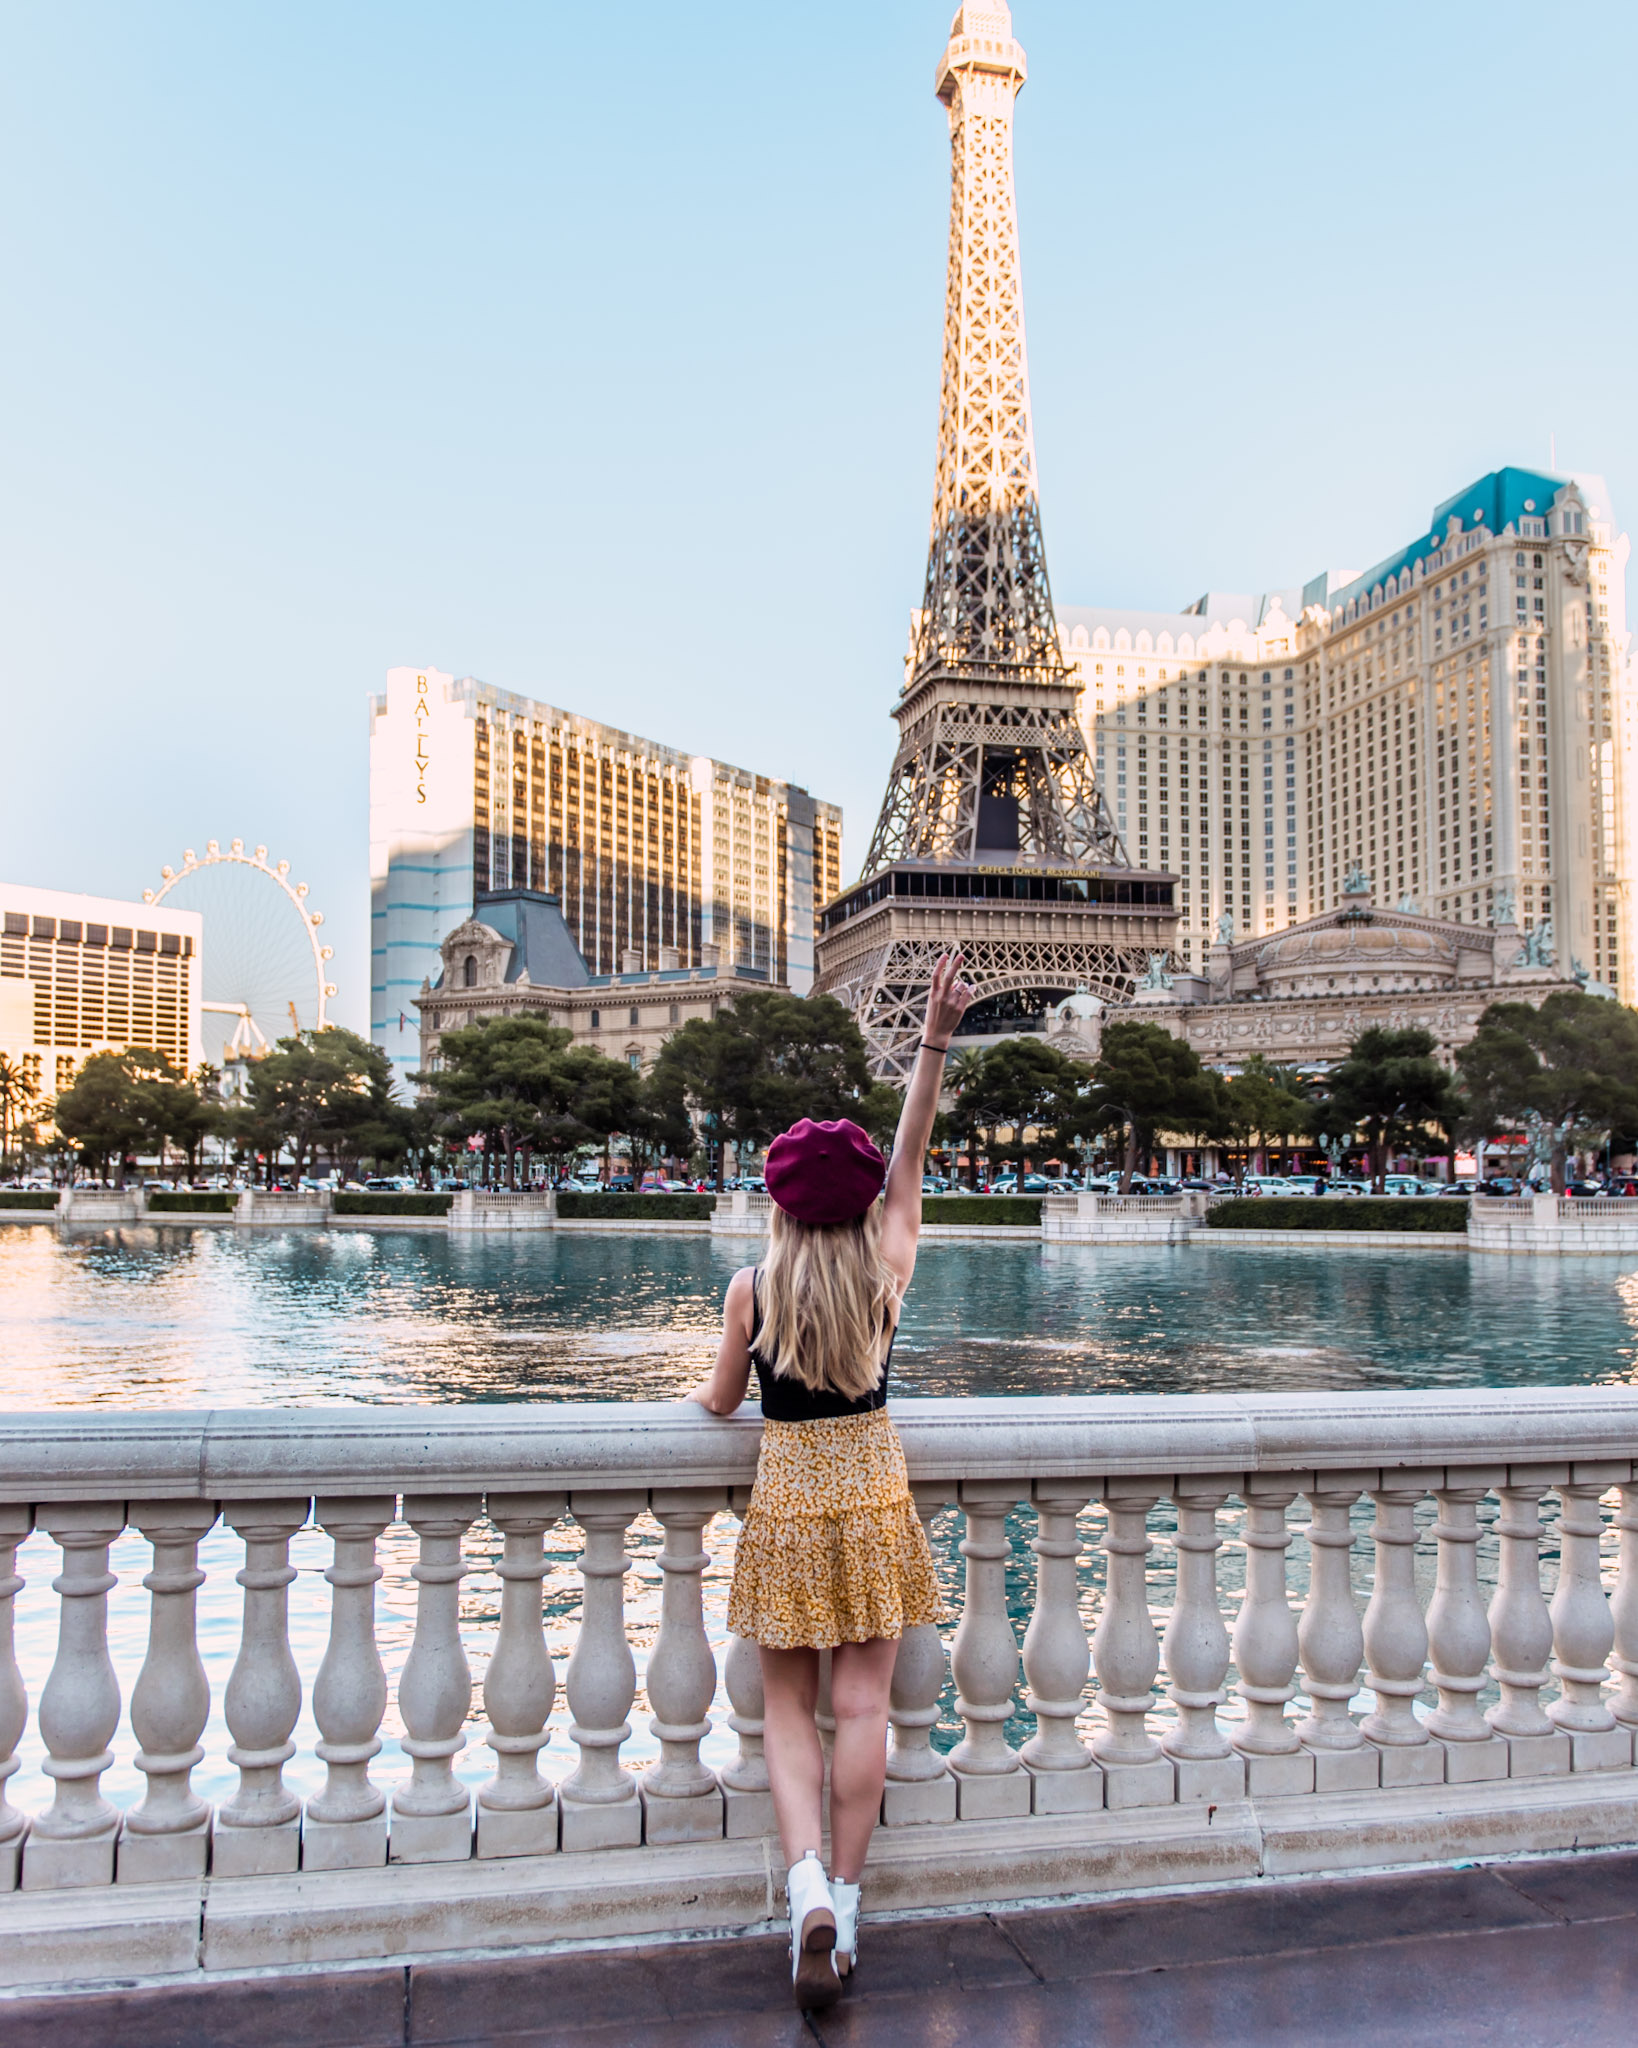 Las Vegas Photo Spots